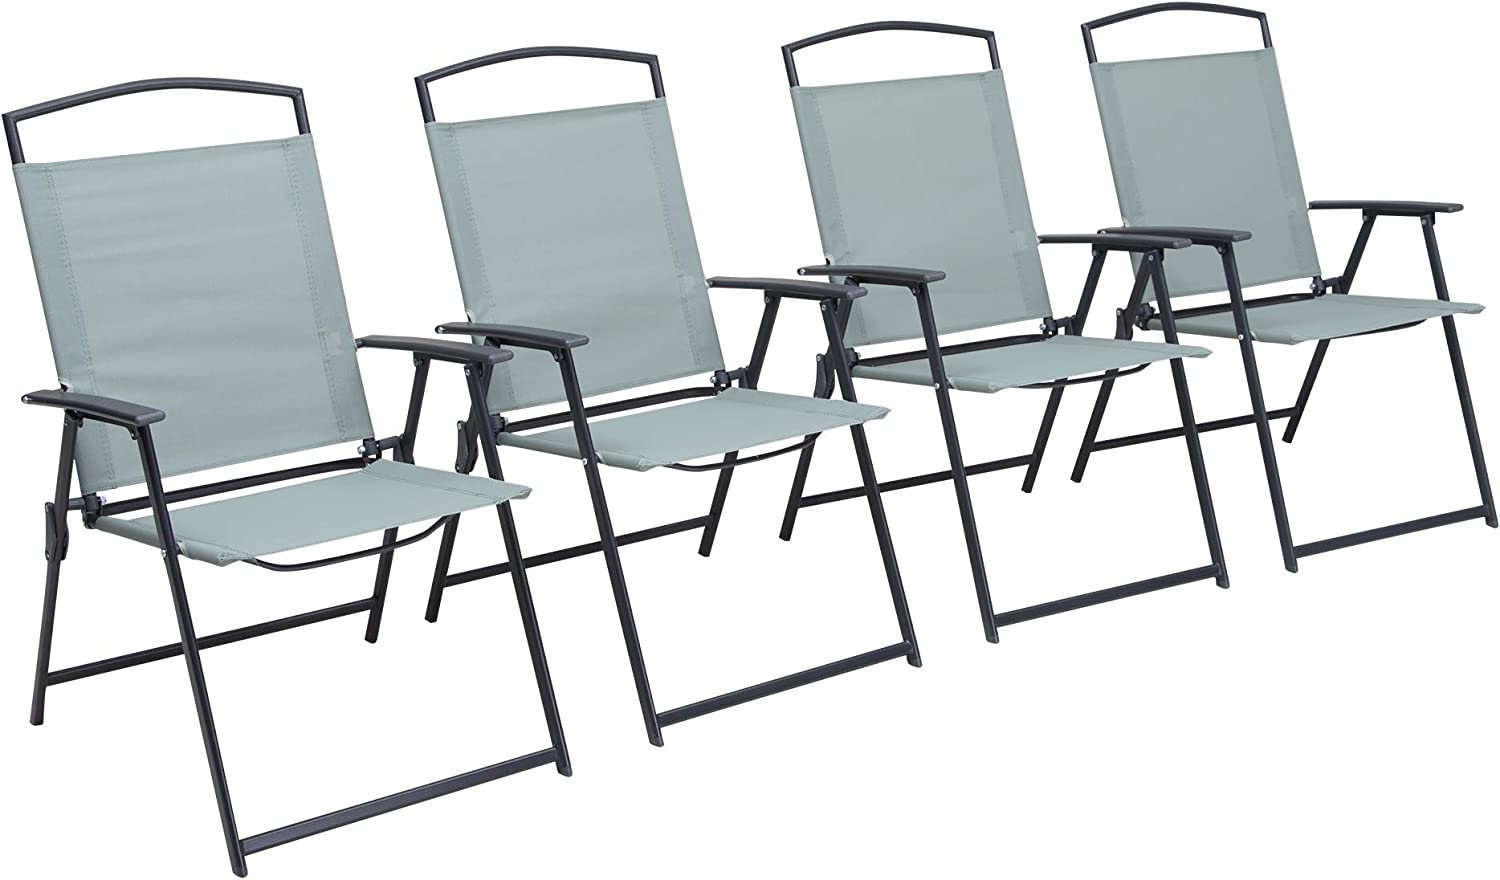 Pellebant Set of 4 Patio Dining Chairs, Outdoor Folding Chairs with Armrest, Patio Furniture Chairs for Camping, Beach, Backyard, Garden, Poolside, Green